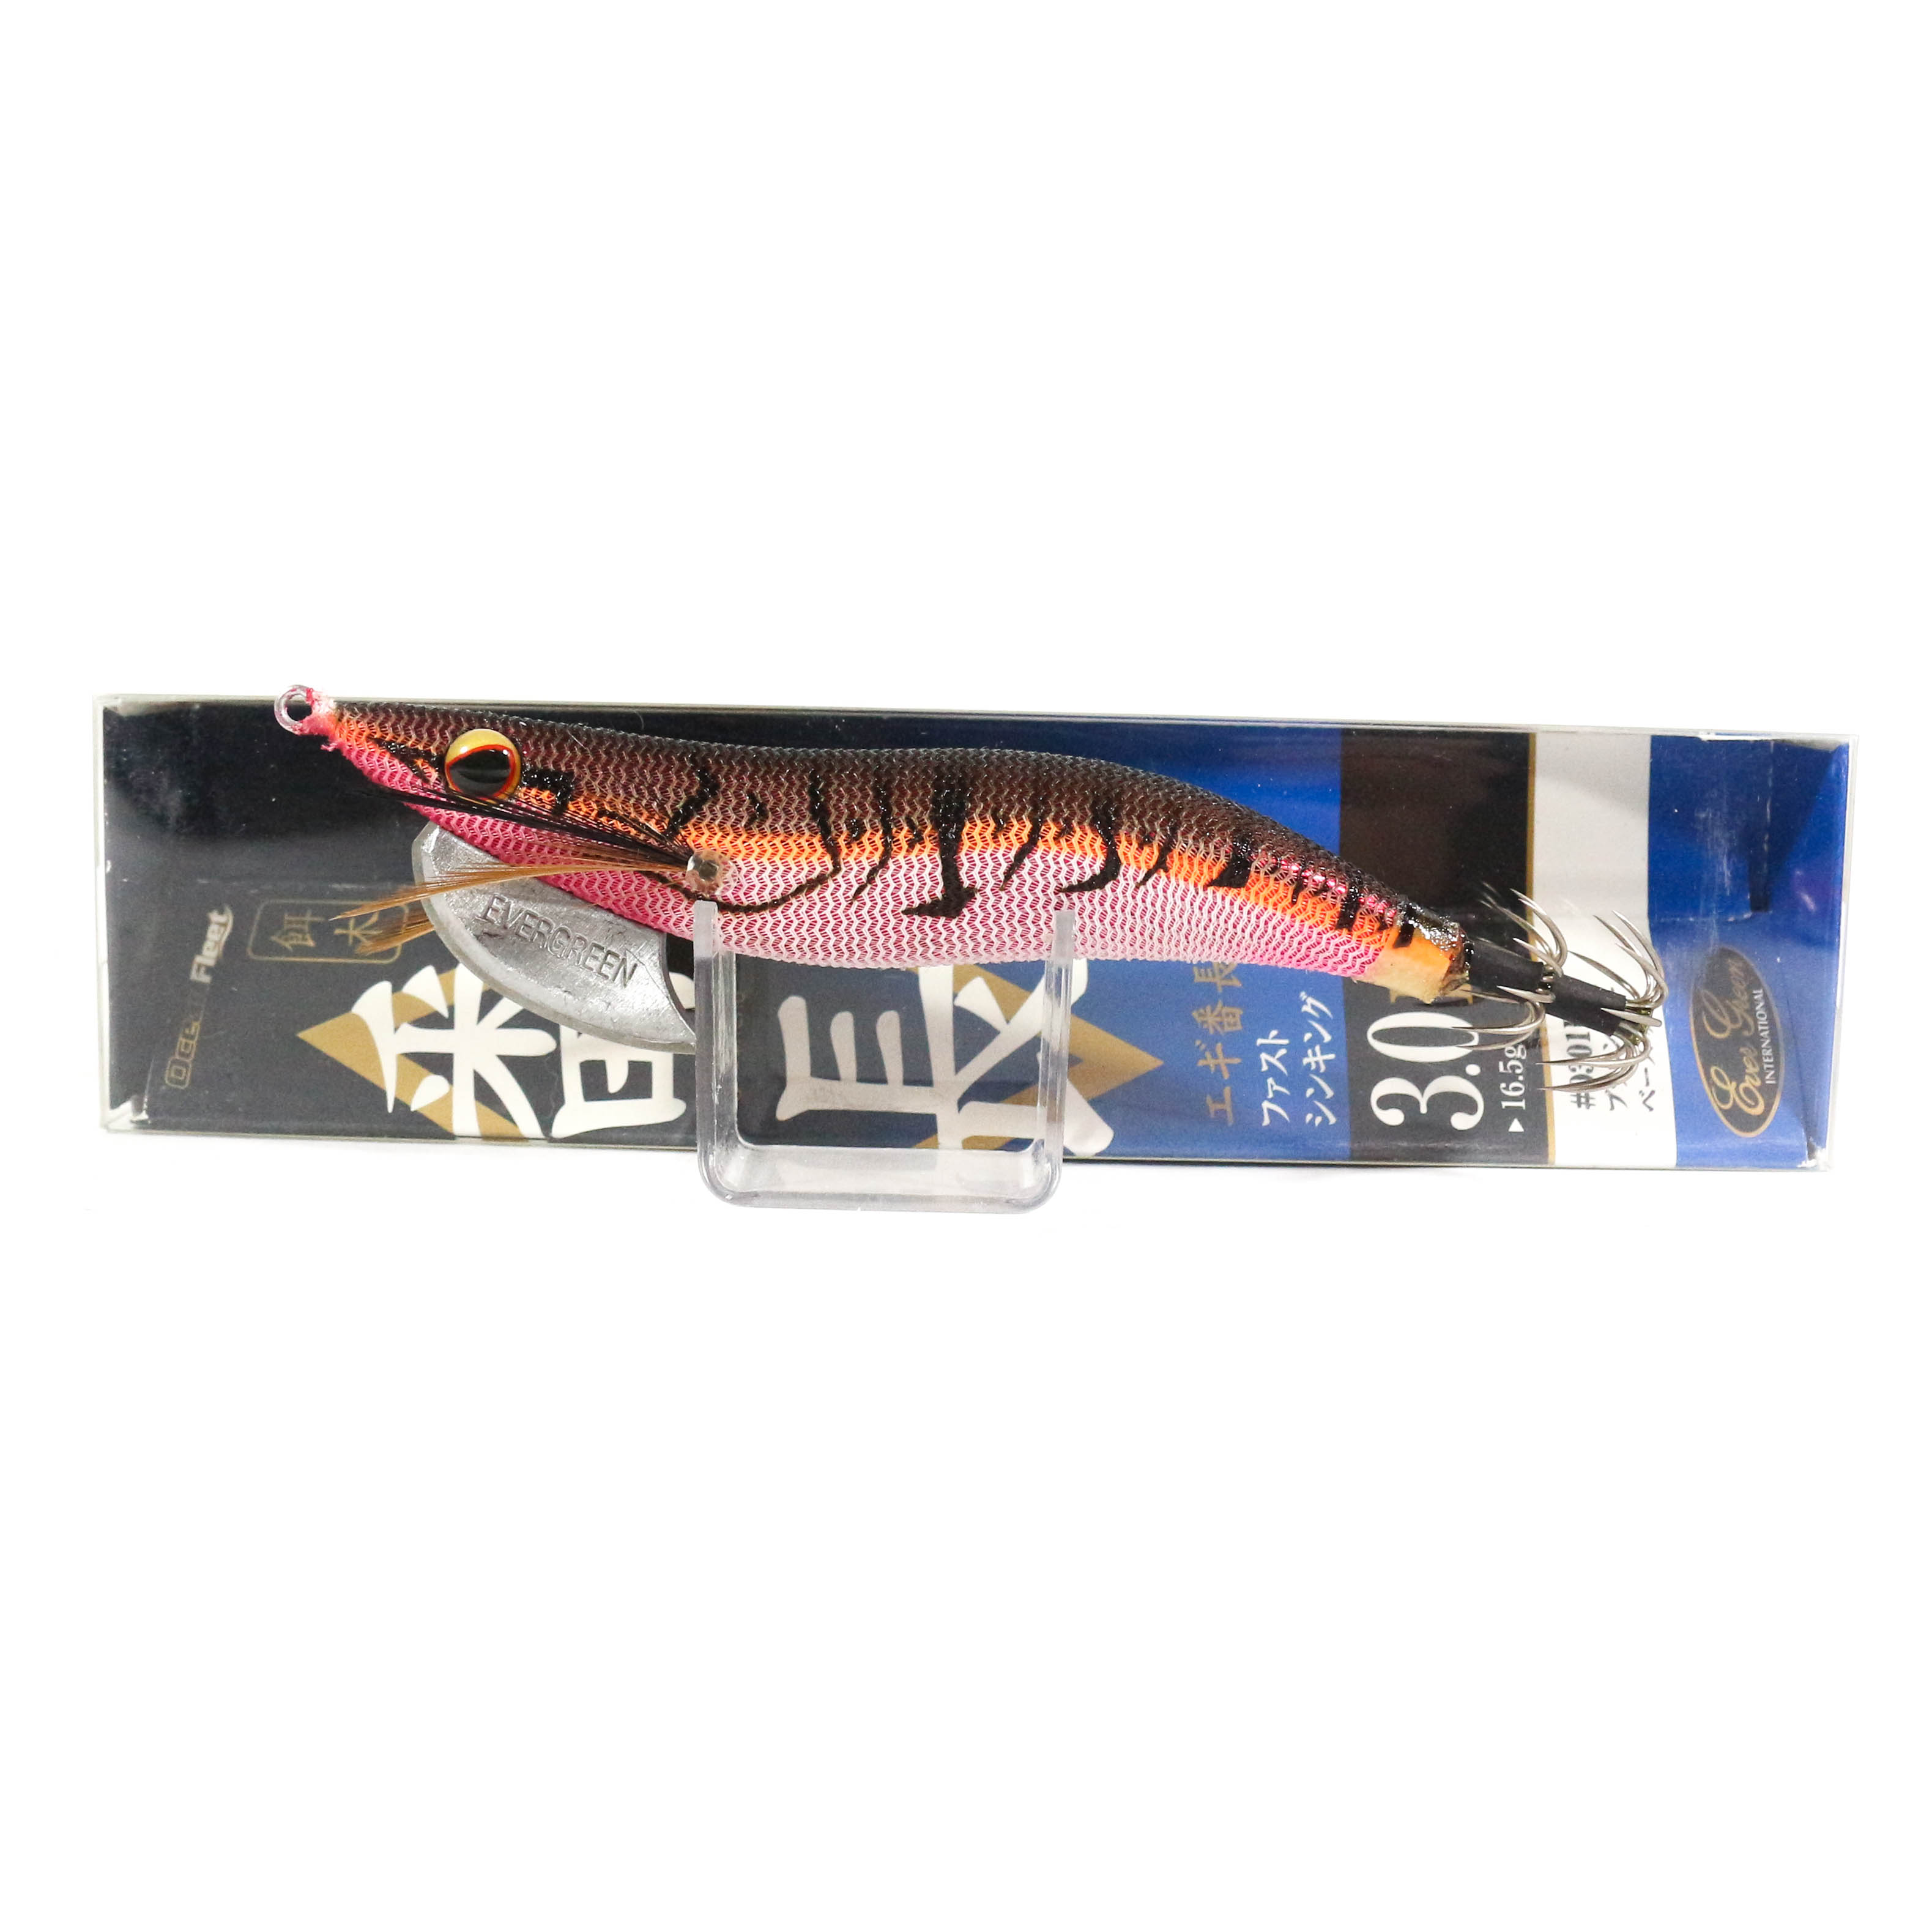 Evergreen Ocean Fleet Custom Squid Jig Lure 3.0D 0301R (3382)